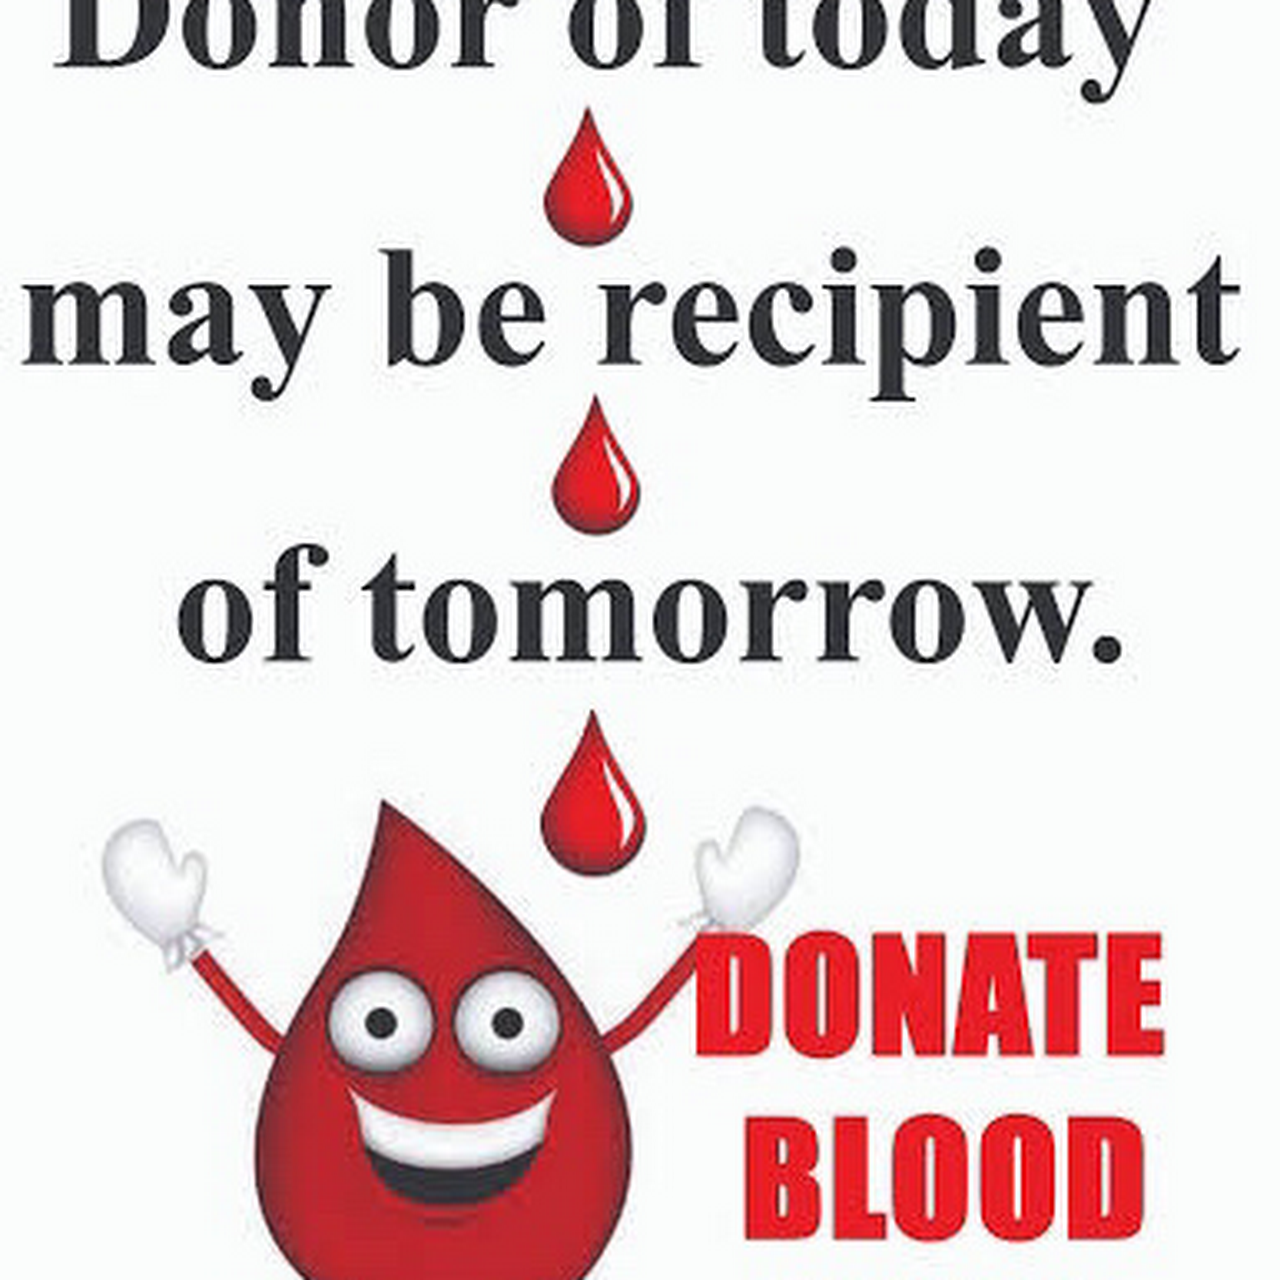 Medipoint Blood Storage Centre - Blood Bank in PUNE